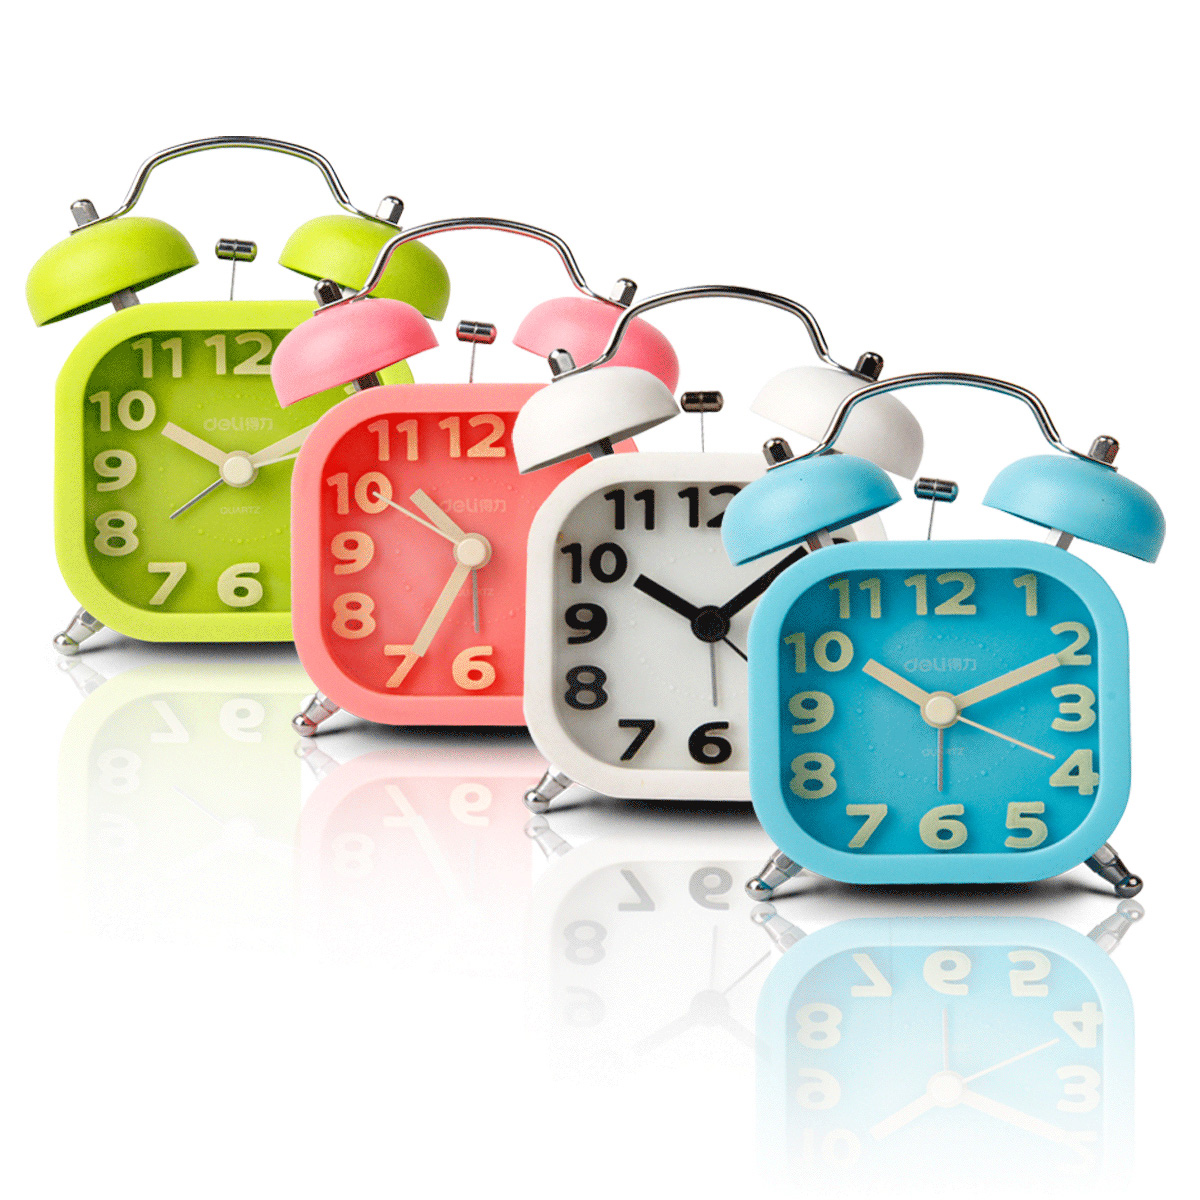 Deli 9035 fashion creative personality bedroom bedside alarm clock mute children luminous student small alarm clock